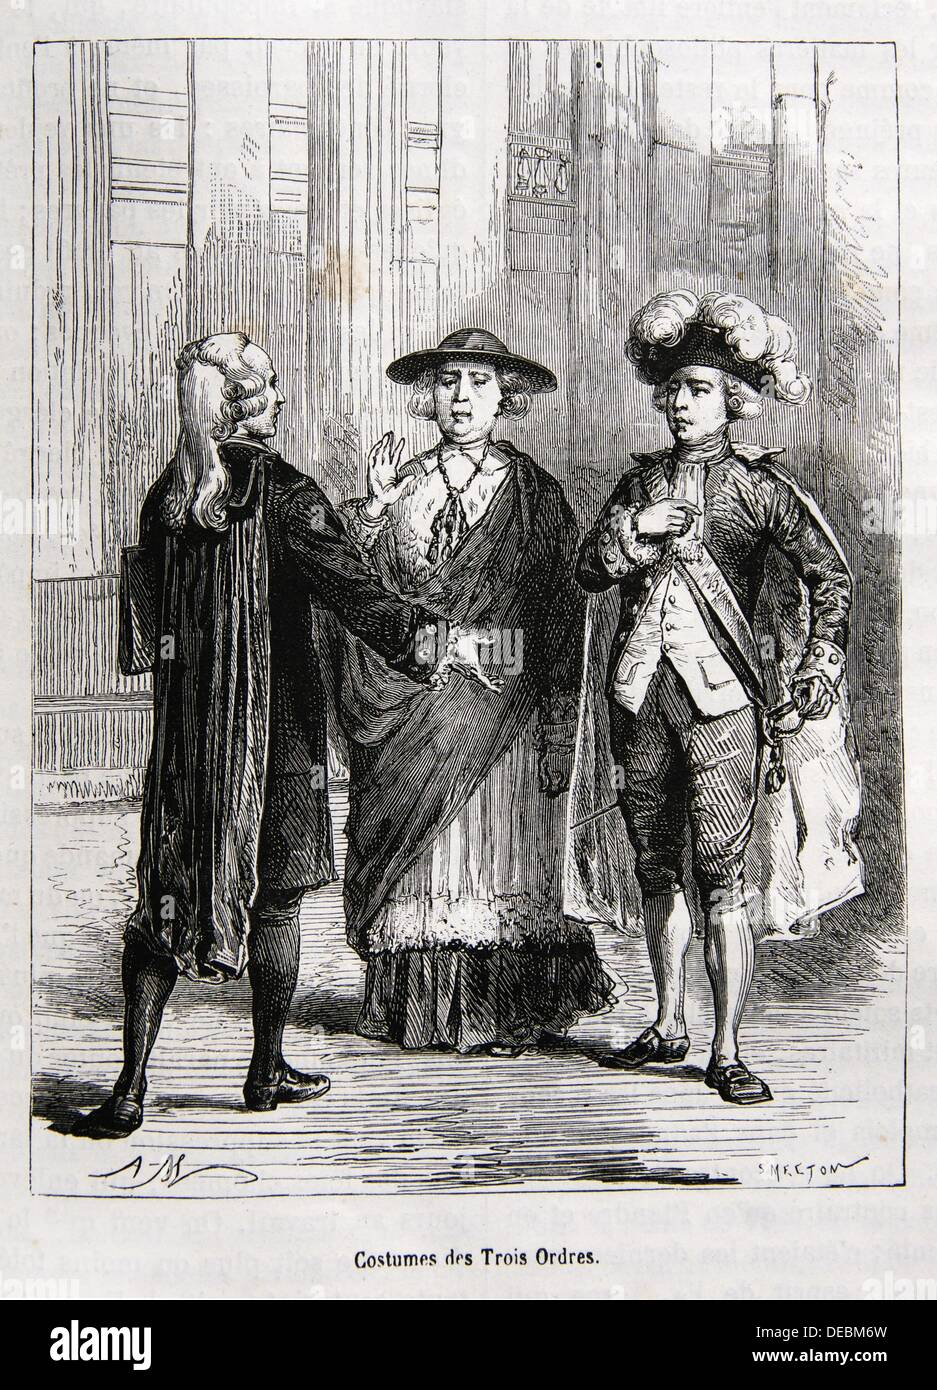 costumes of the three estates in the kingdom of france under the old regime 18th